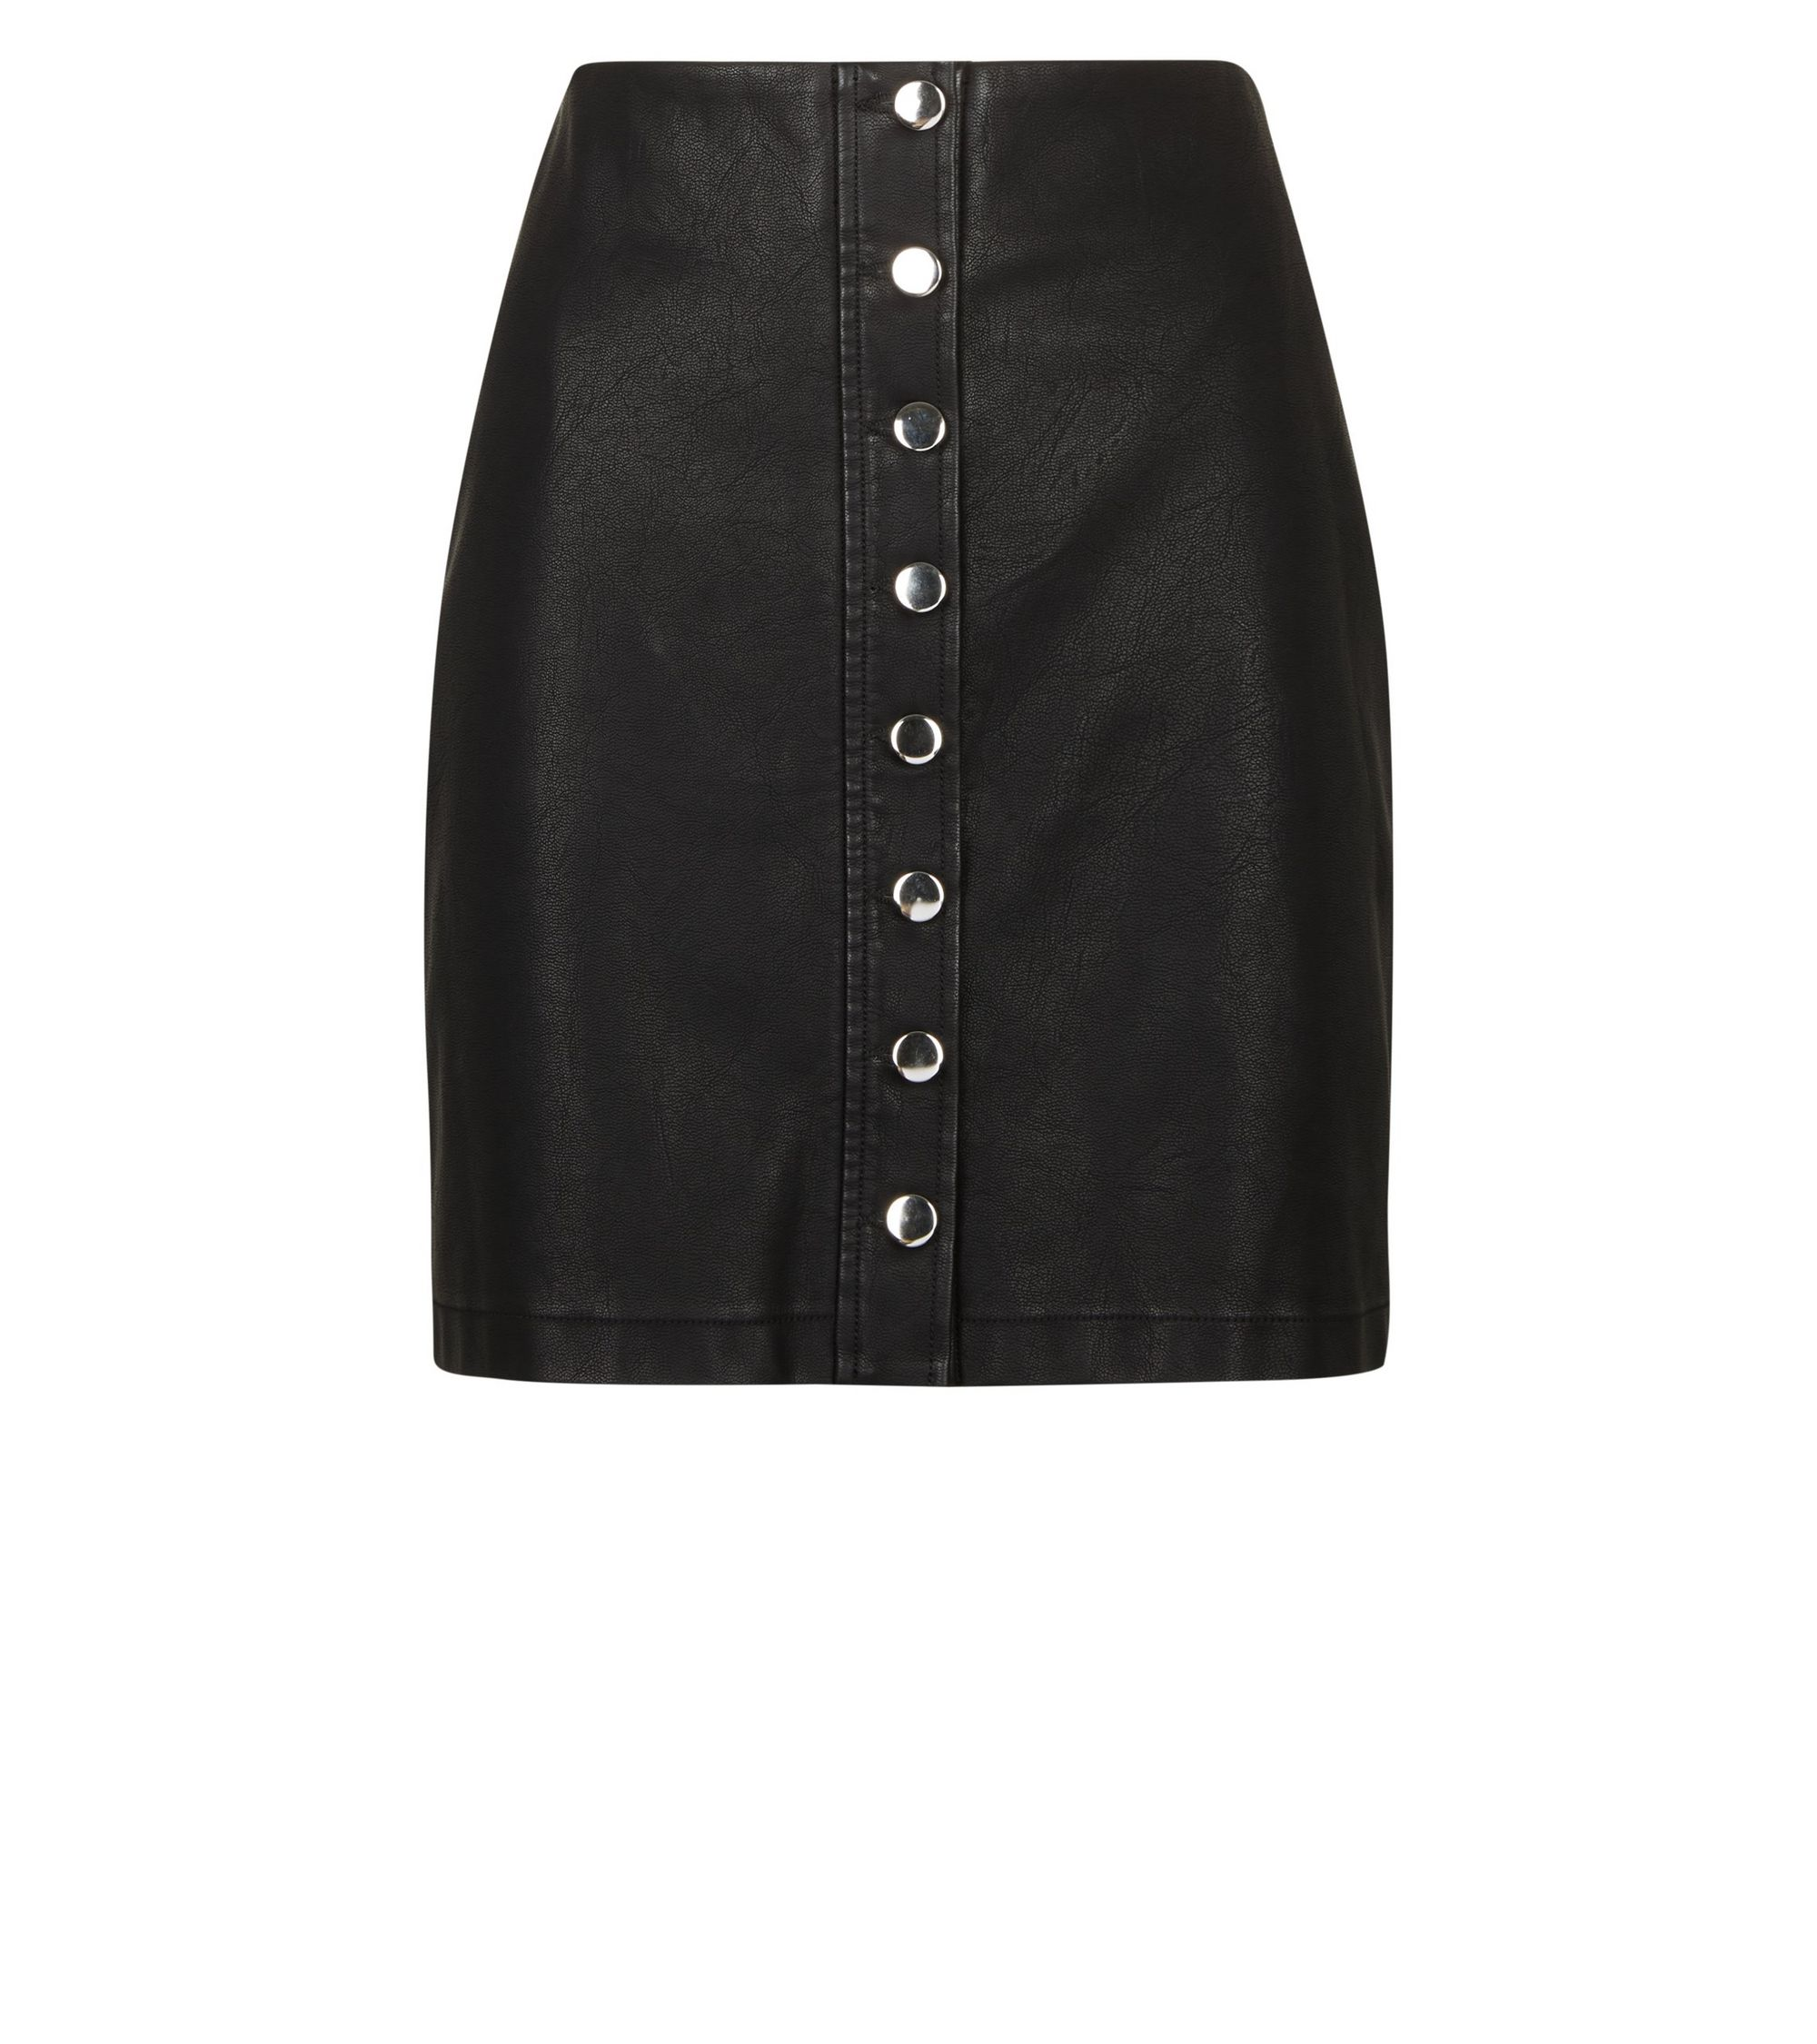 b2f41117a1bb4c New Look Black Leather Look Skirt – DACC